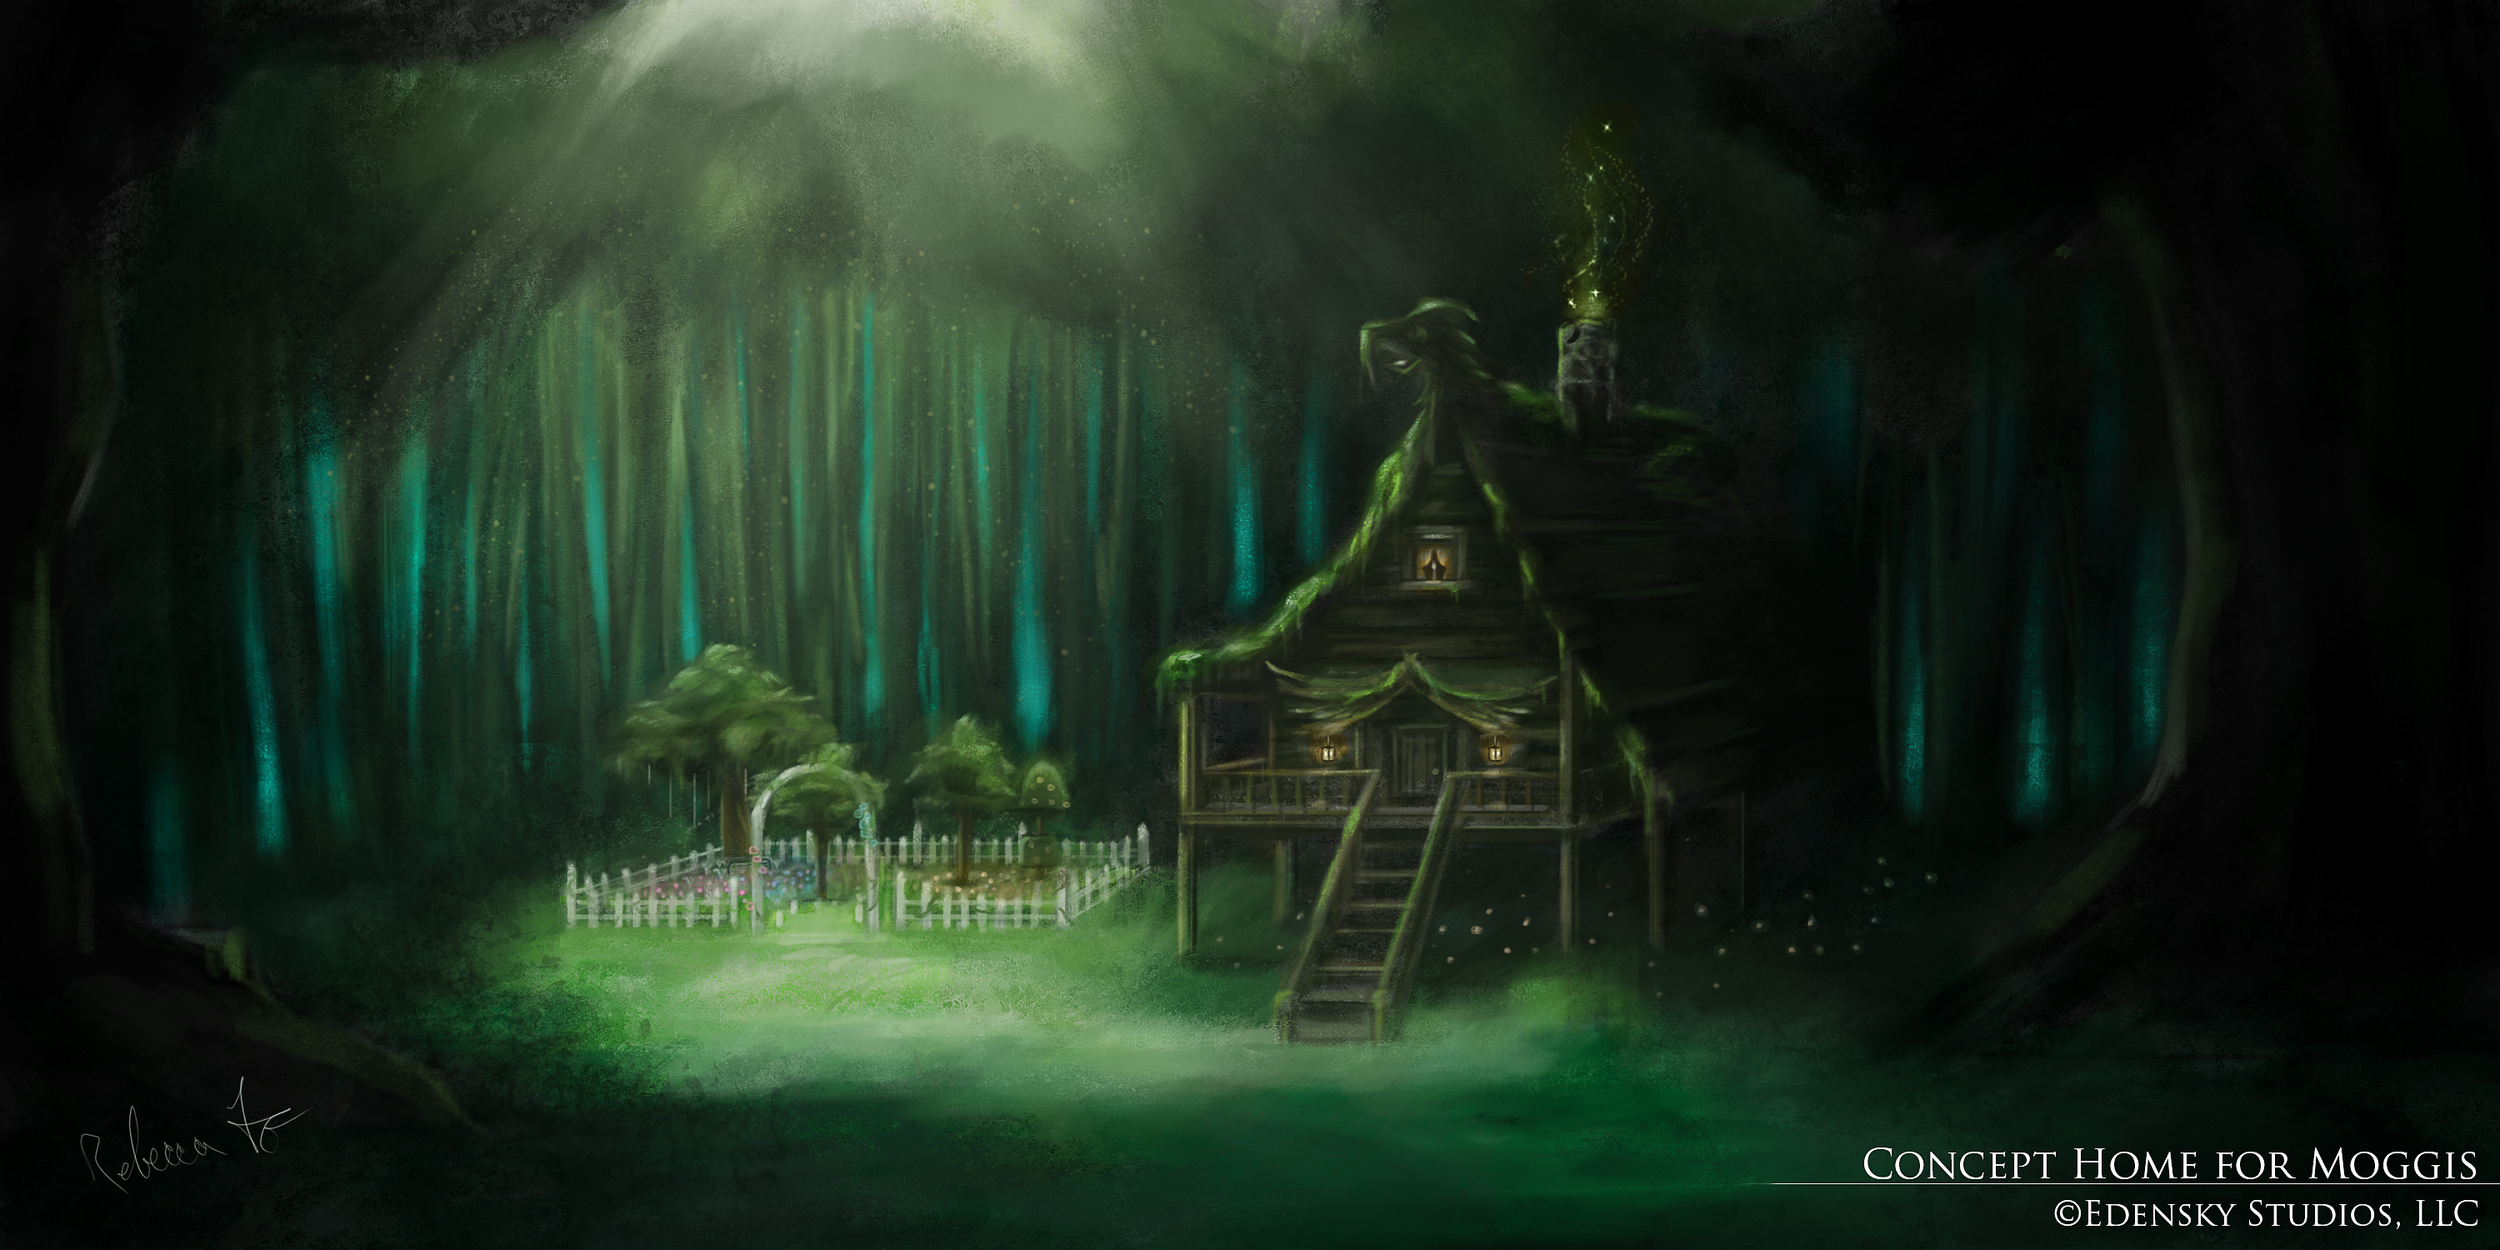 final_concept_home_for_moggis (1).png